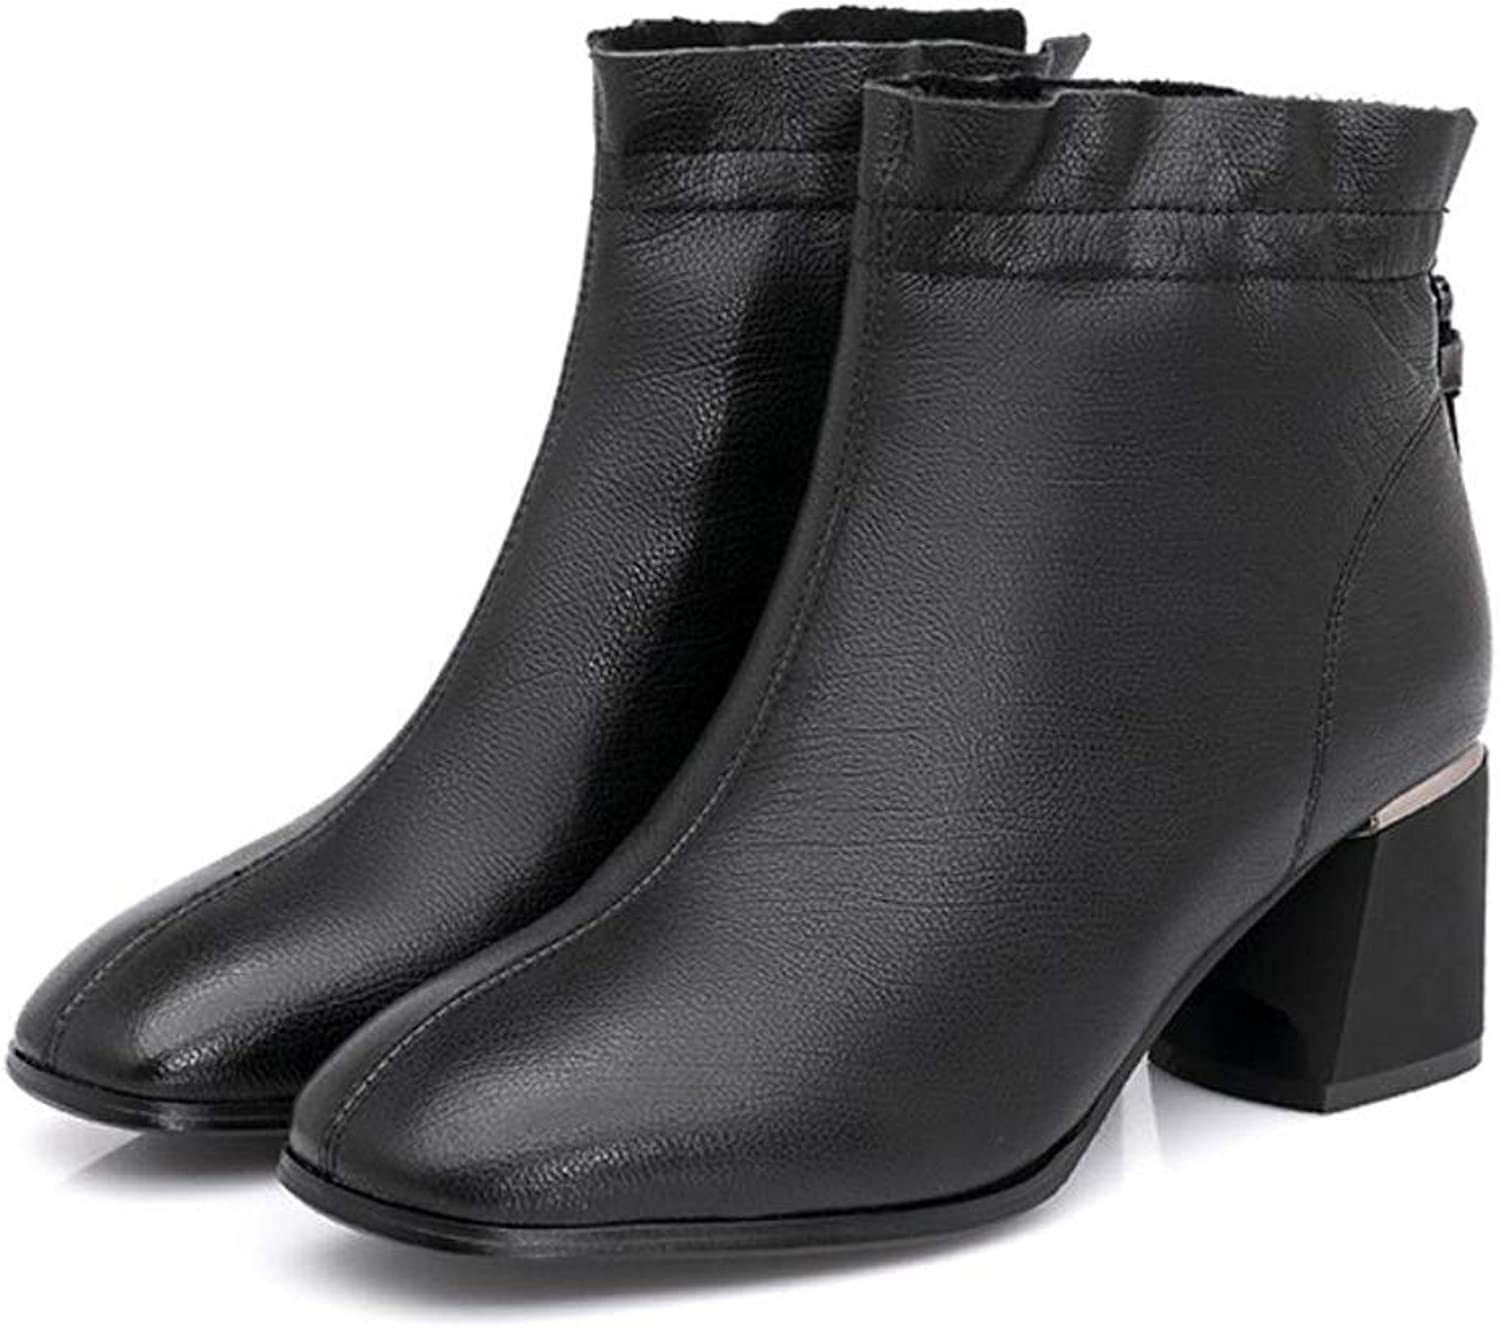 Womens Chelsea Ankle Boots with Zipper Block Heel Ladies British Style Martin Boots